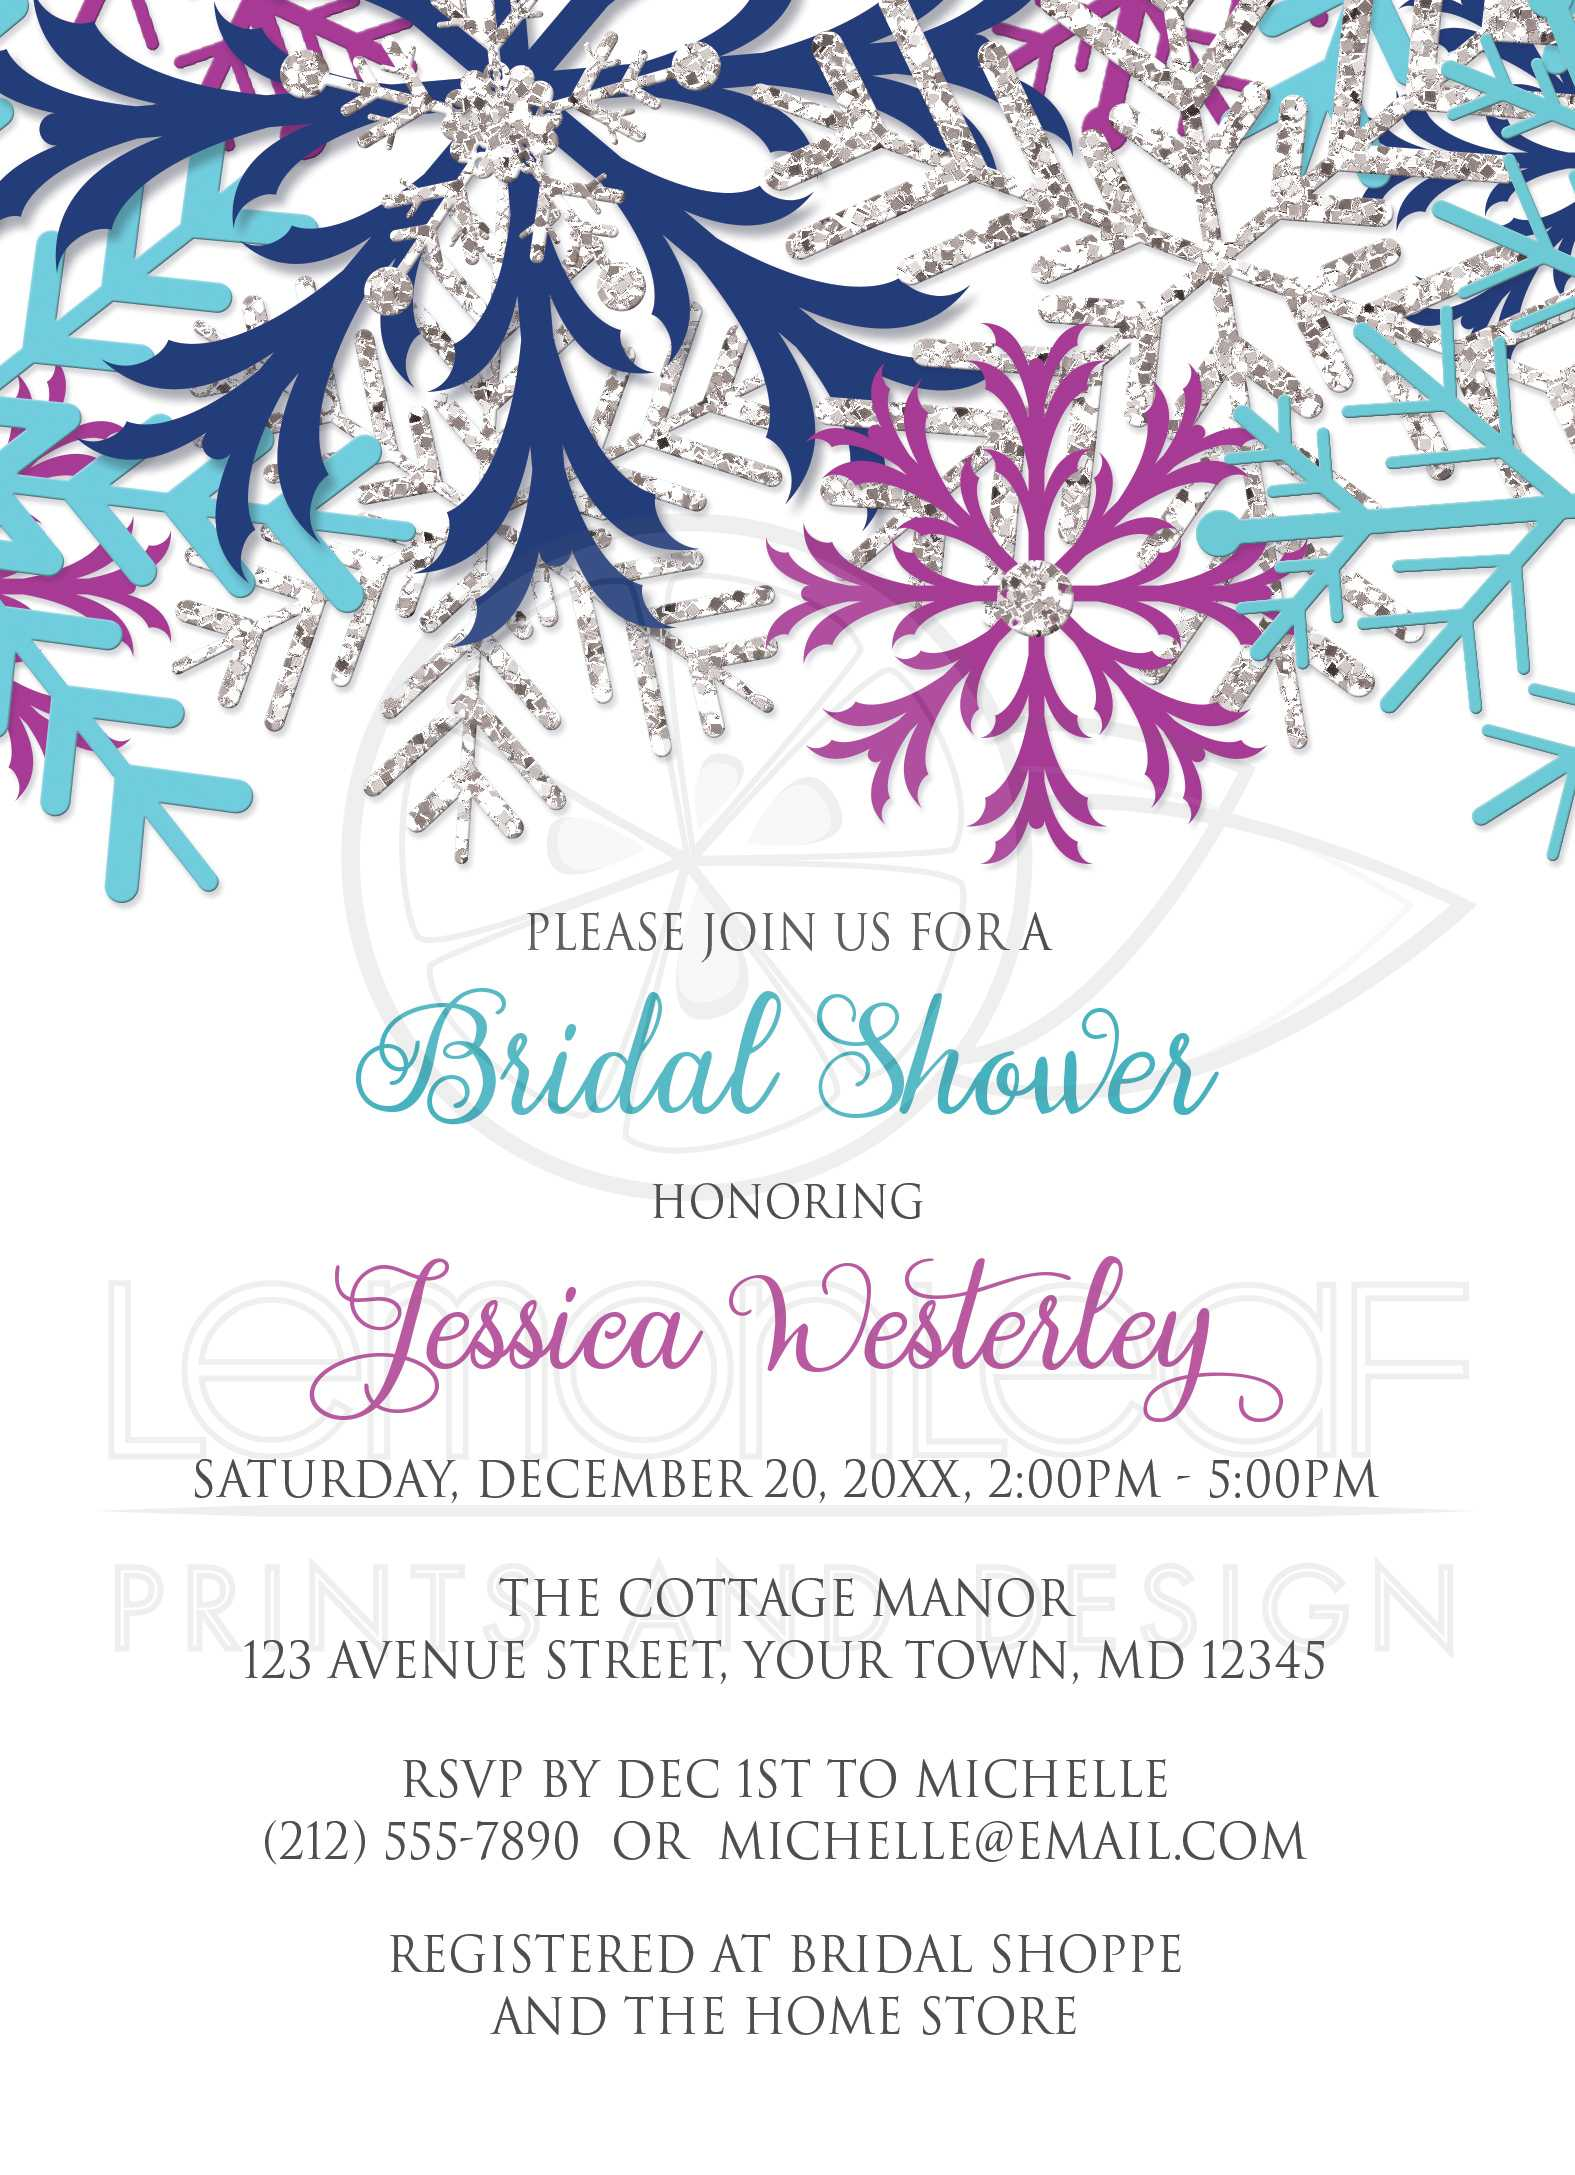 bridal shower invitations turquoise navy orchid silver snowflake